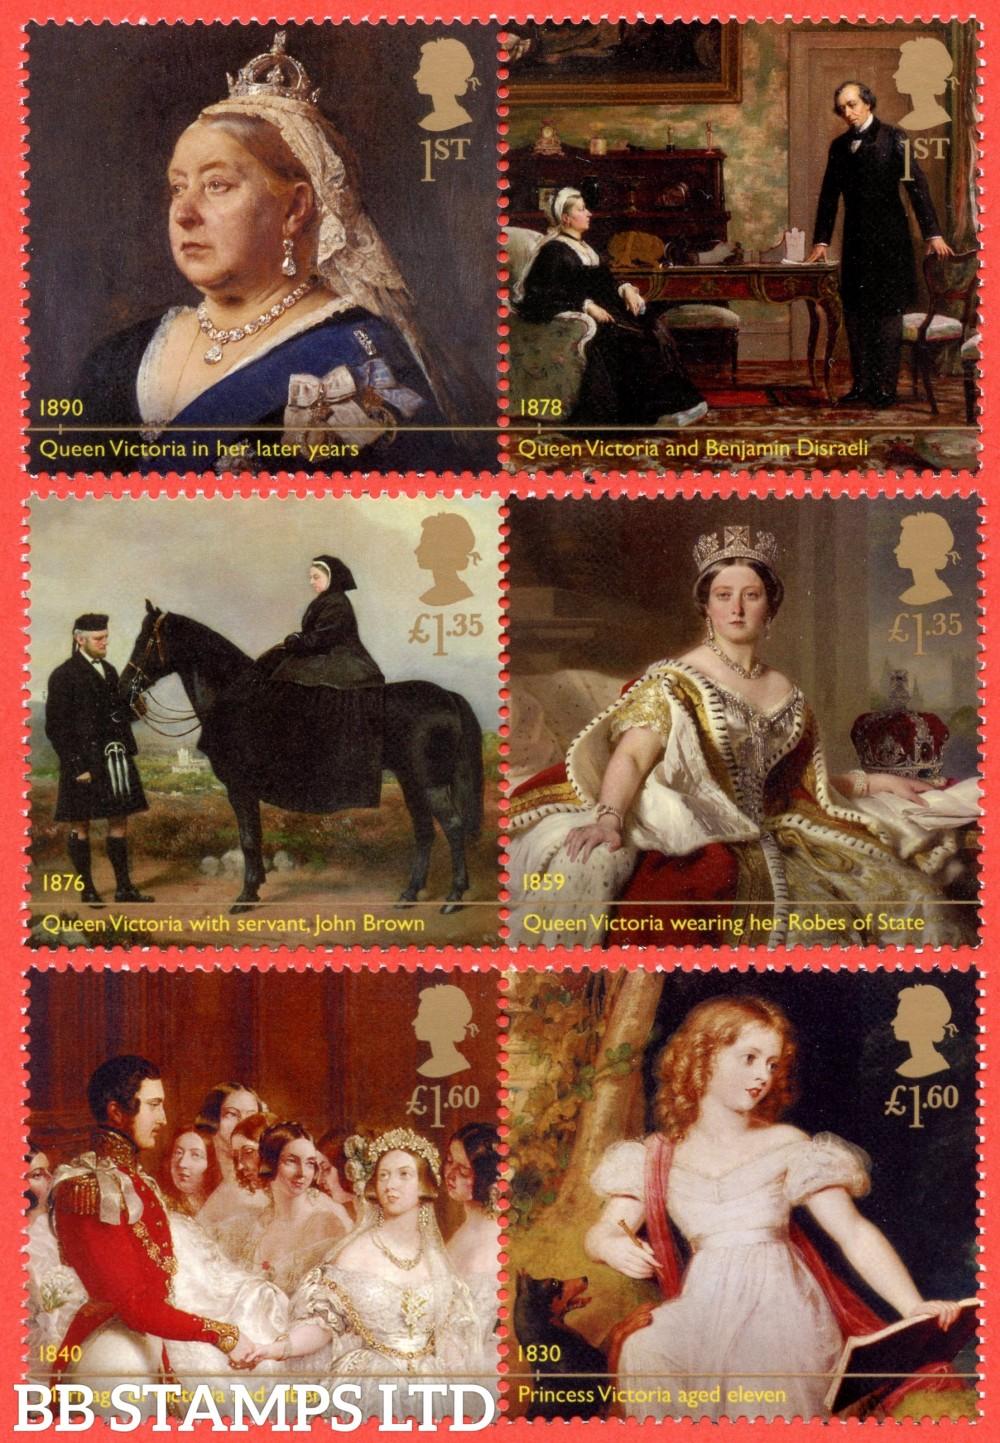 2019 Bicentenary of Queen Victoria (PACK: Includes Minisheet - No Barcode) (AVAILABLE FROM: 24/05/19) (Images will be uploaded & orders dispatched on or after day of issue)